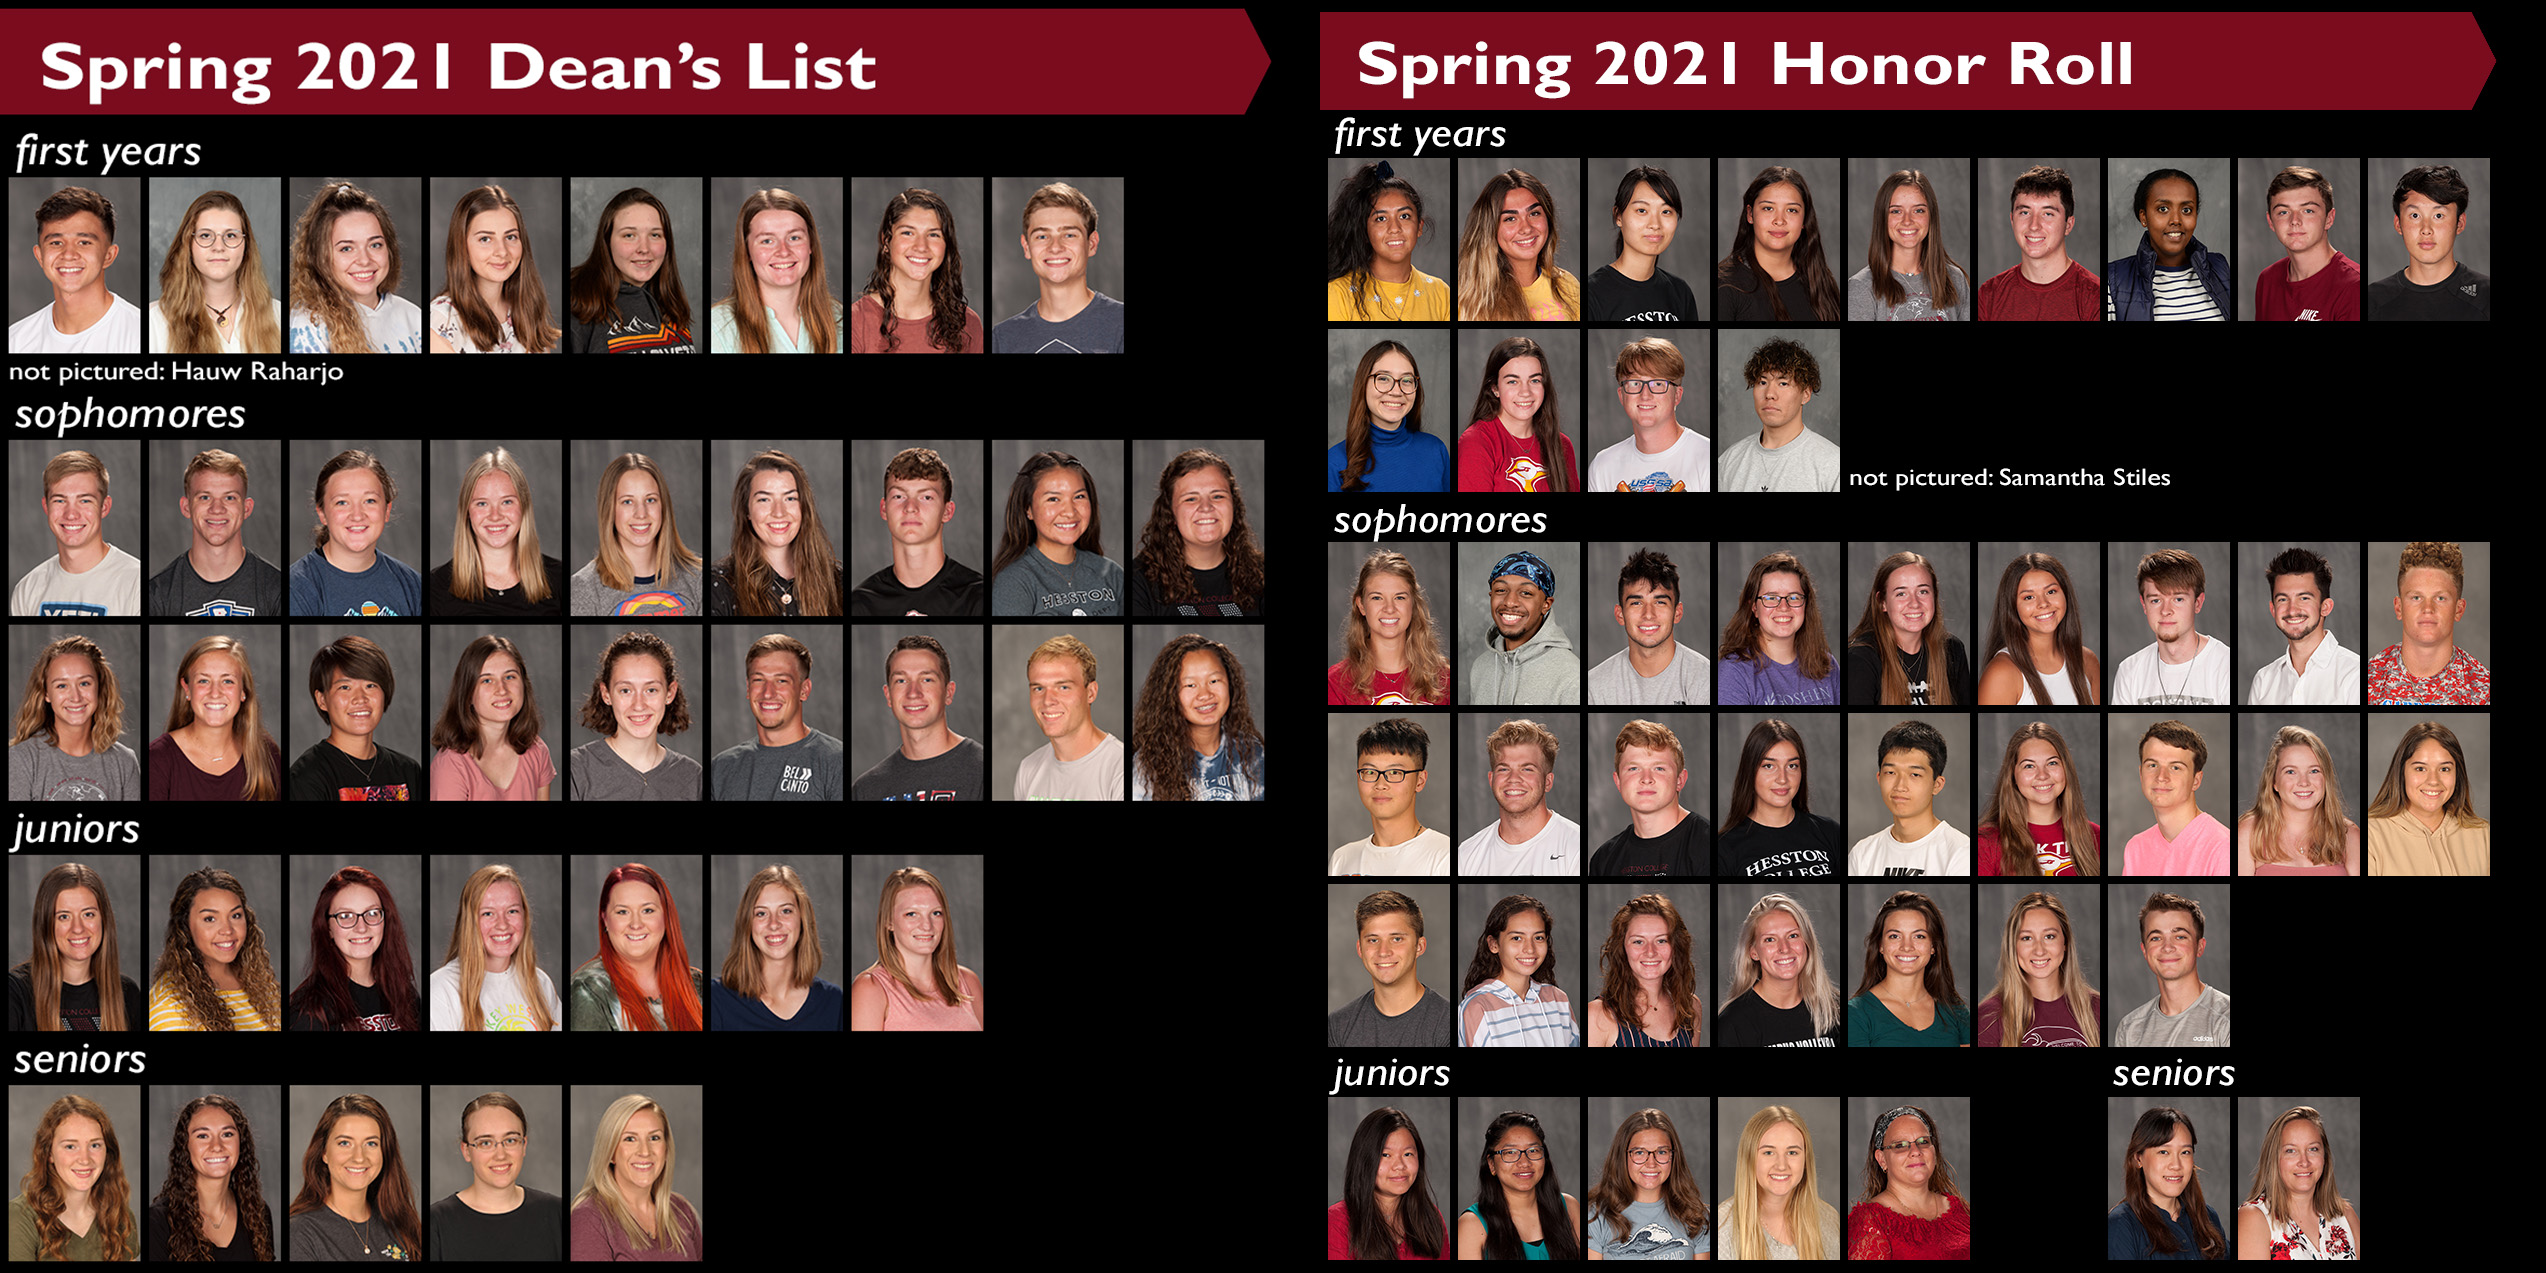 2021 spring honors